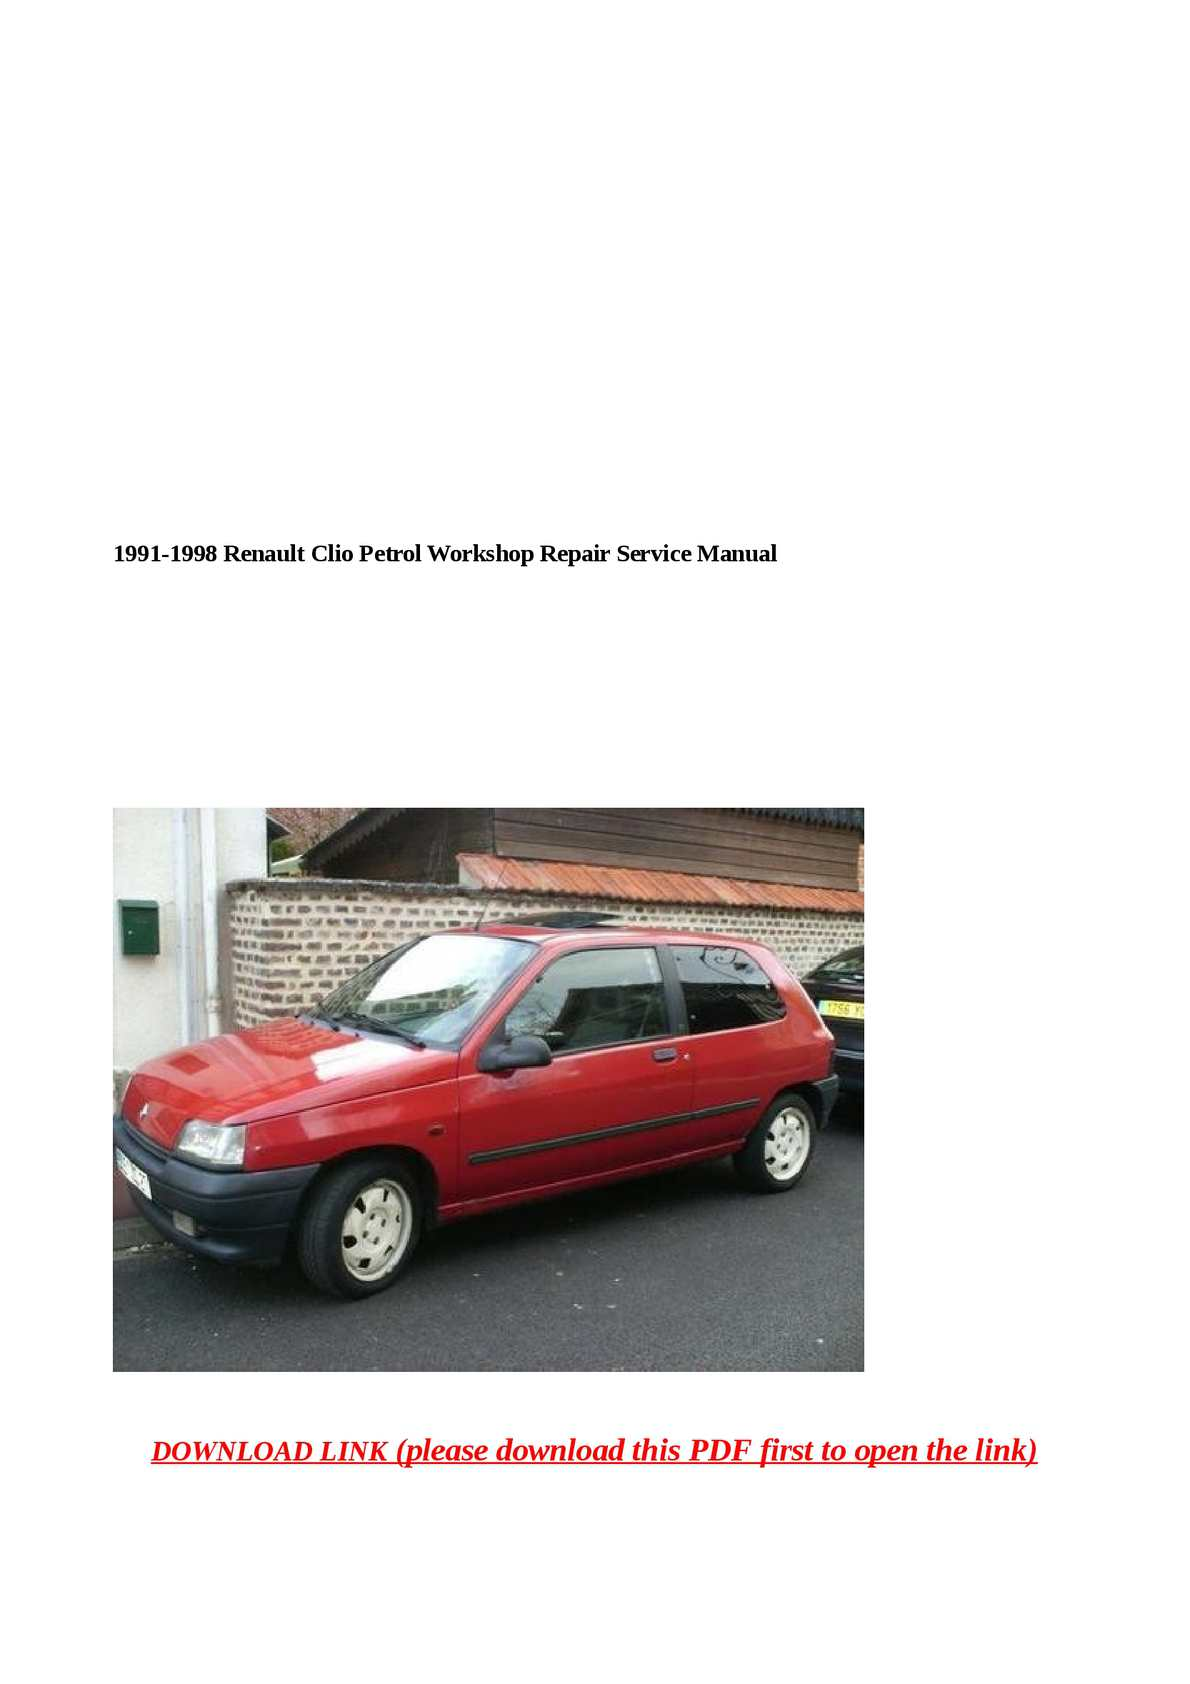 Renault clio ii manual pdf renault clio 1 manual pdf 1996 array calam o 1991 1998 renault clio petrol workshop repair service manual rh calameo fandeluxe Choice Image